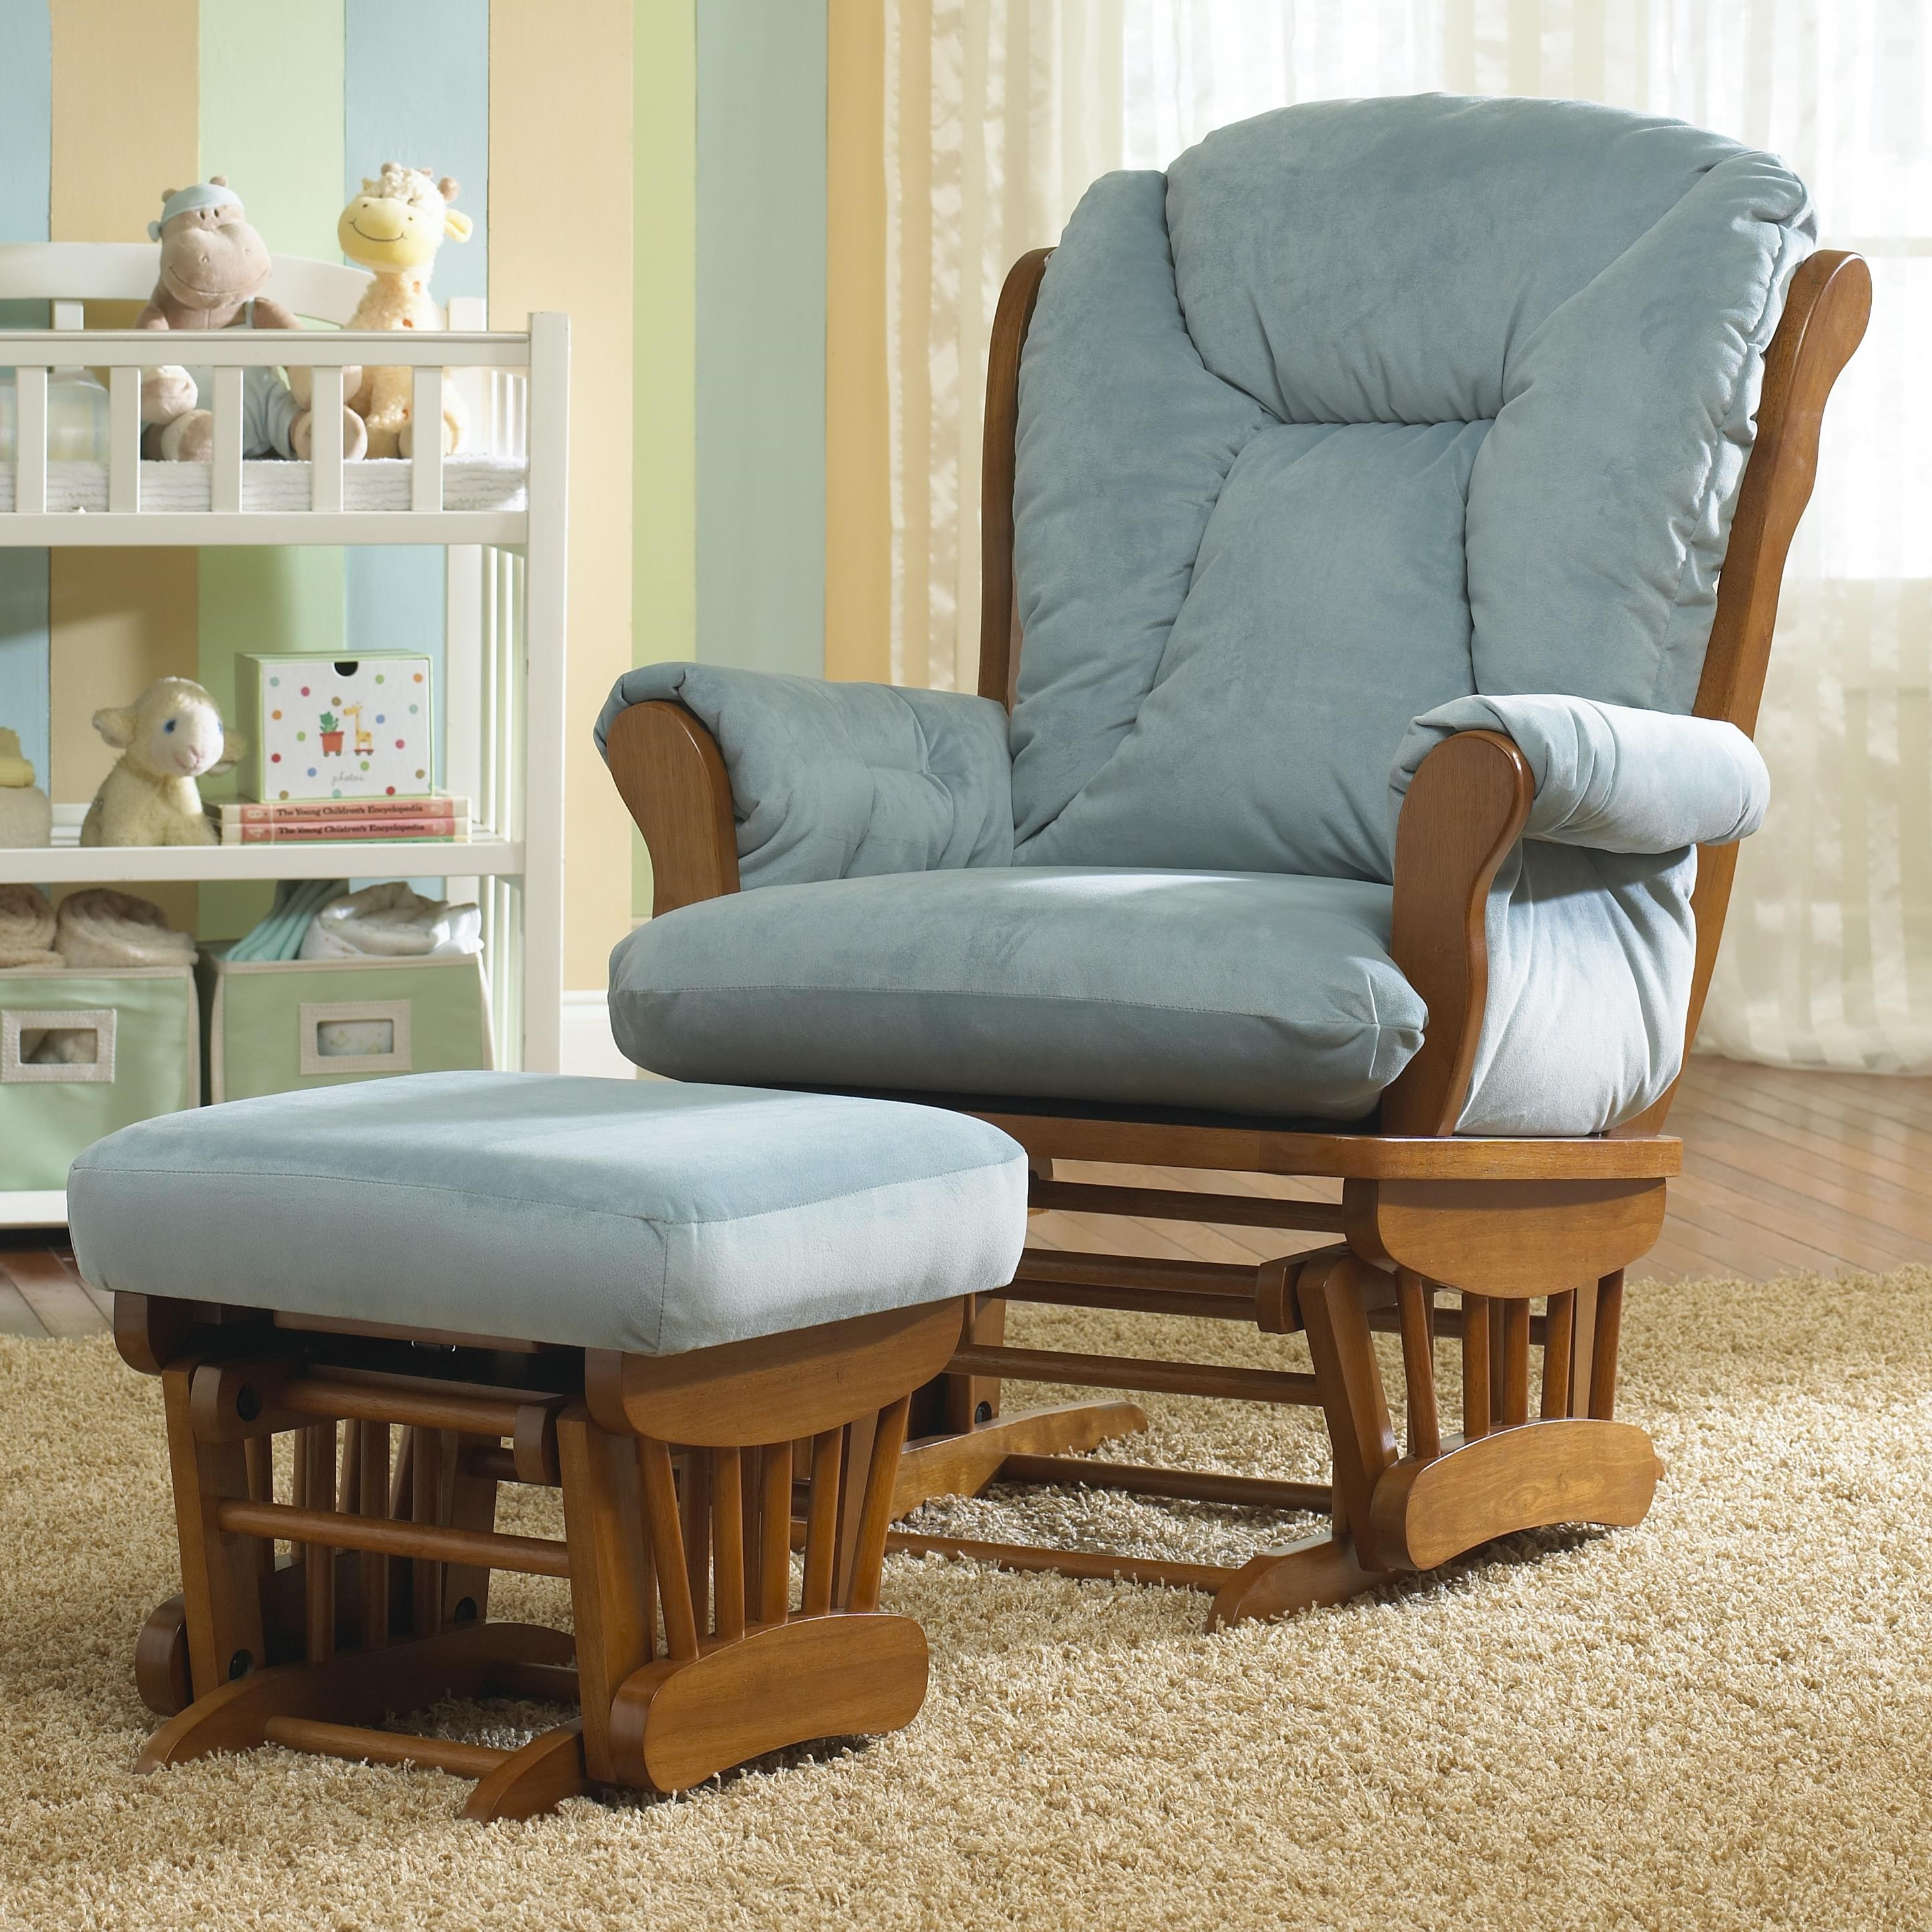 Bon Best Chairs Storytime Series Storytime Glider Rockers And Ottomans Manuel  Chair And Ottoman Set